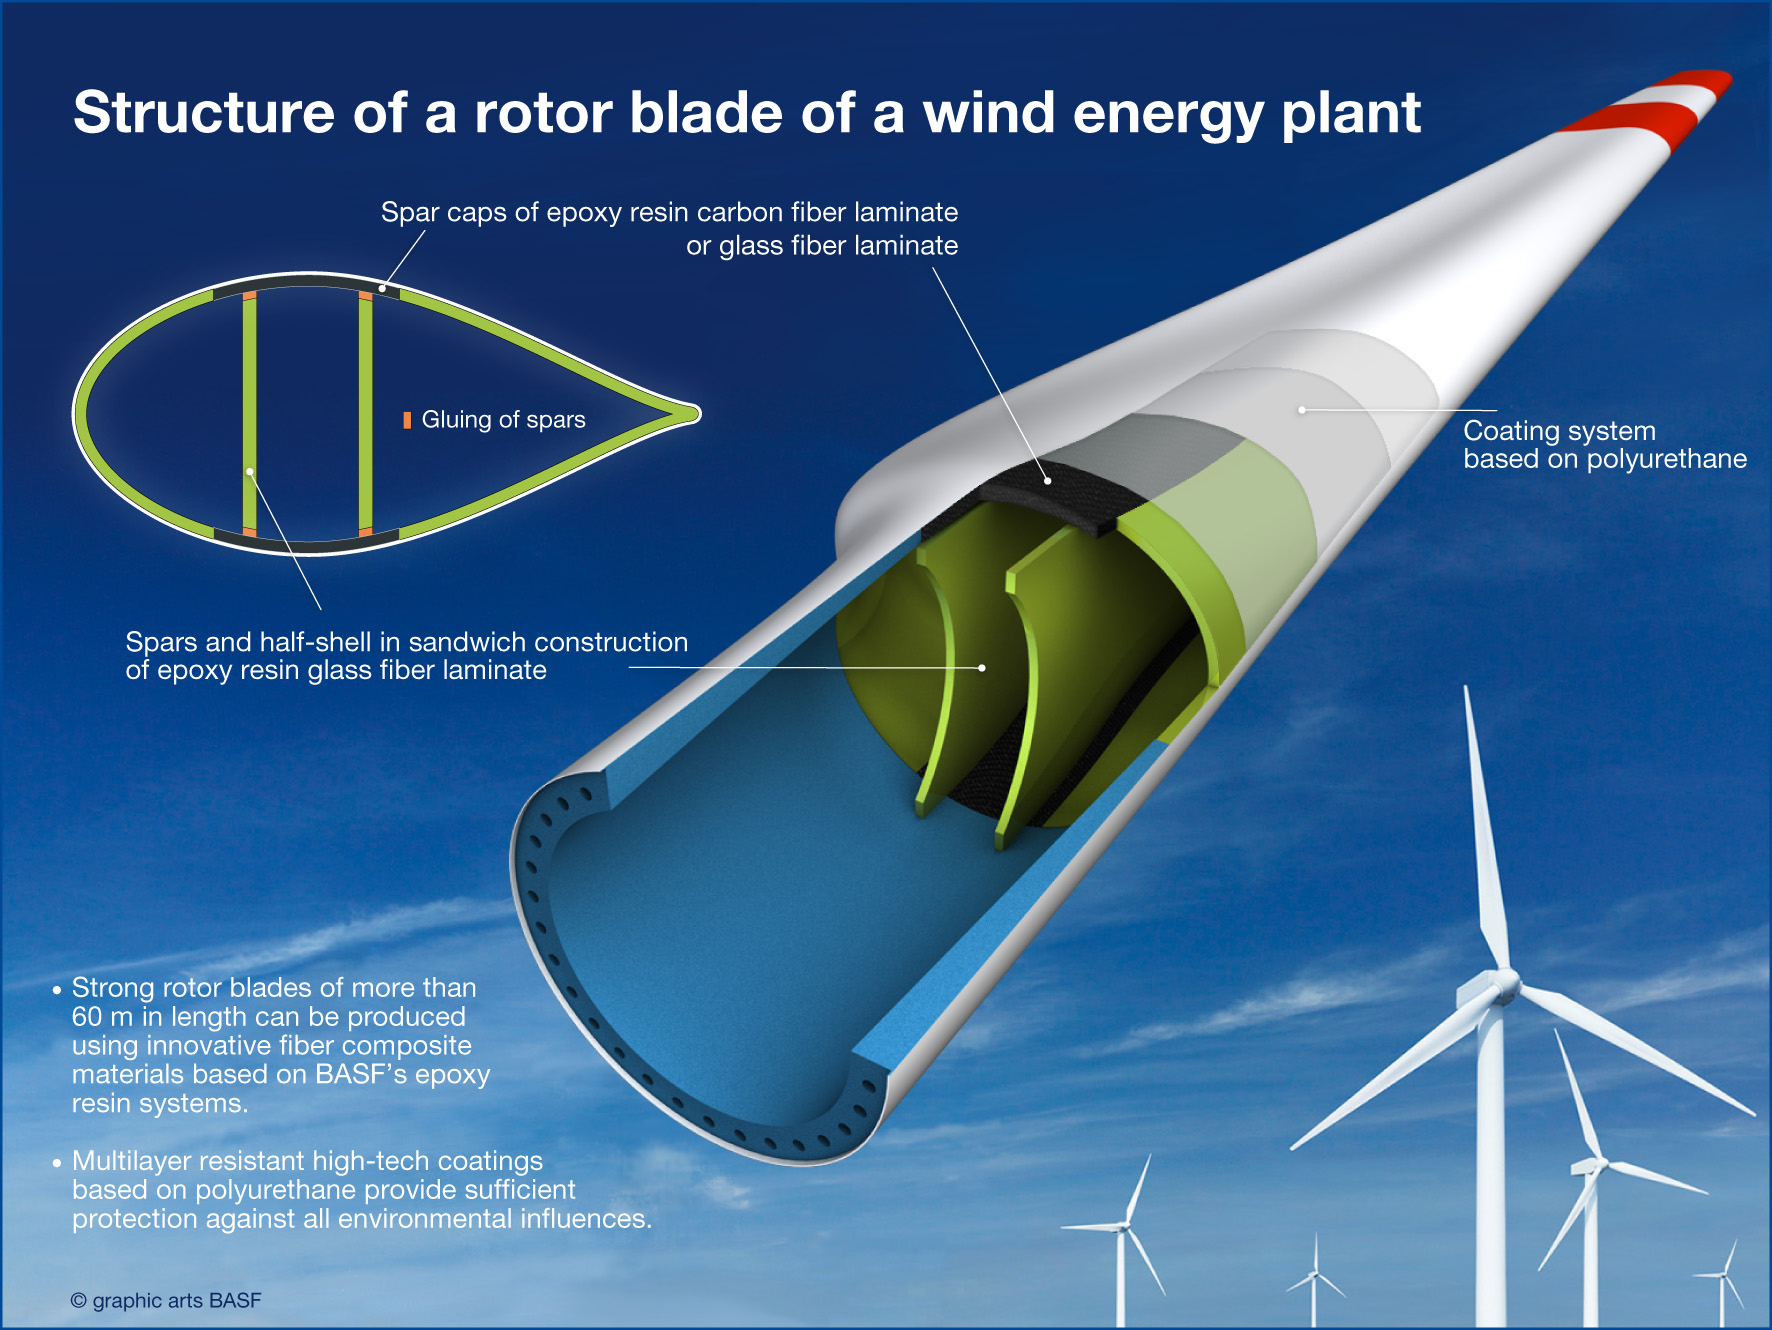 Windkraft_Infografik_03_cs4_E_240310